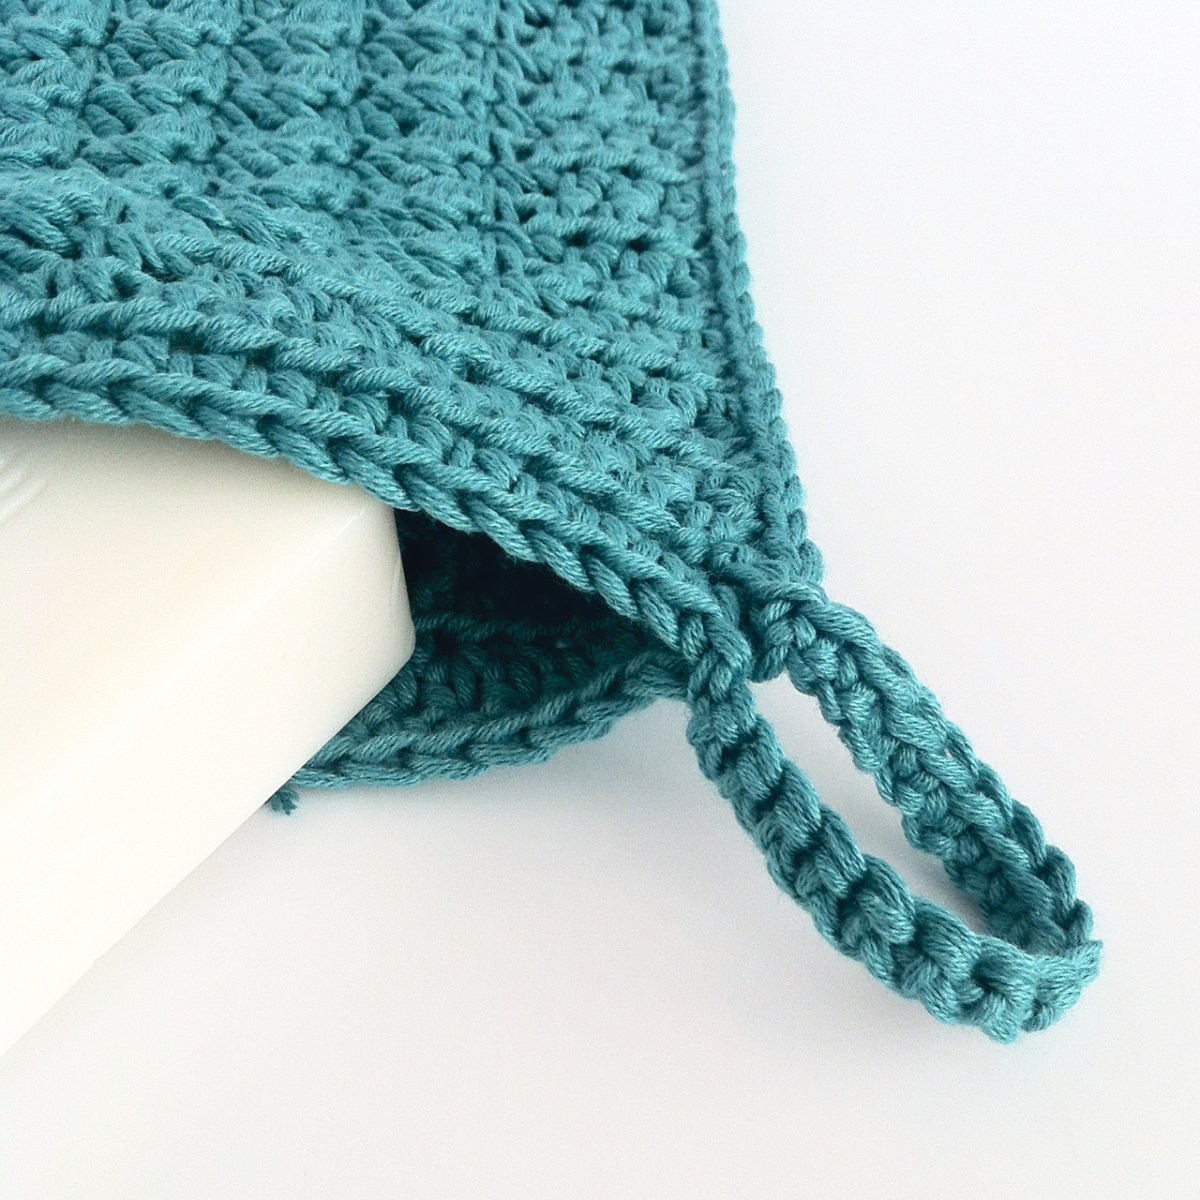 Crochet Wash Mitt with Loop